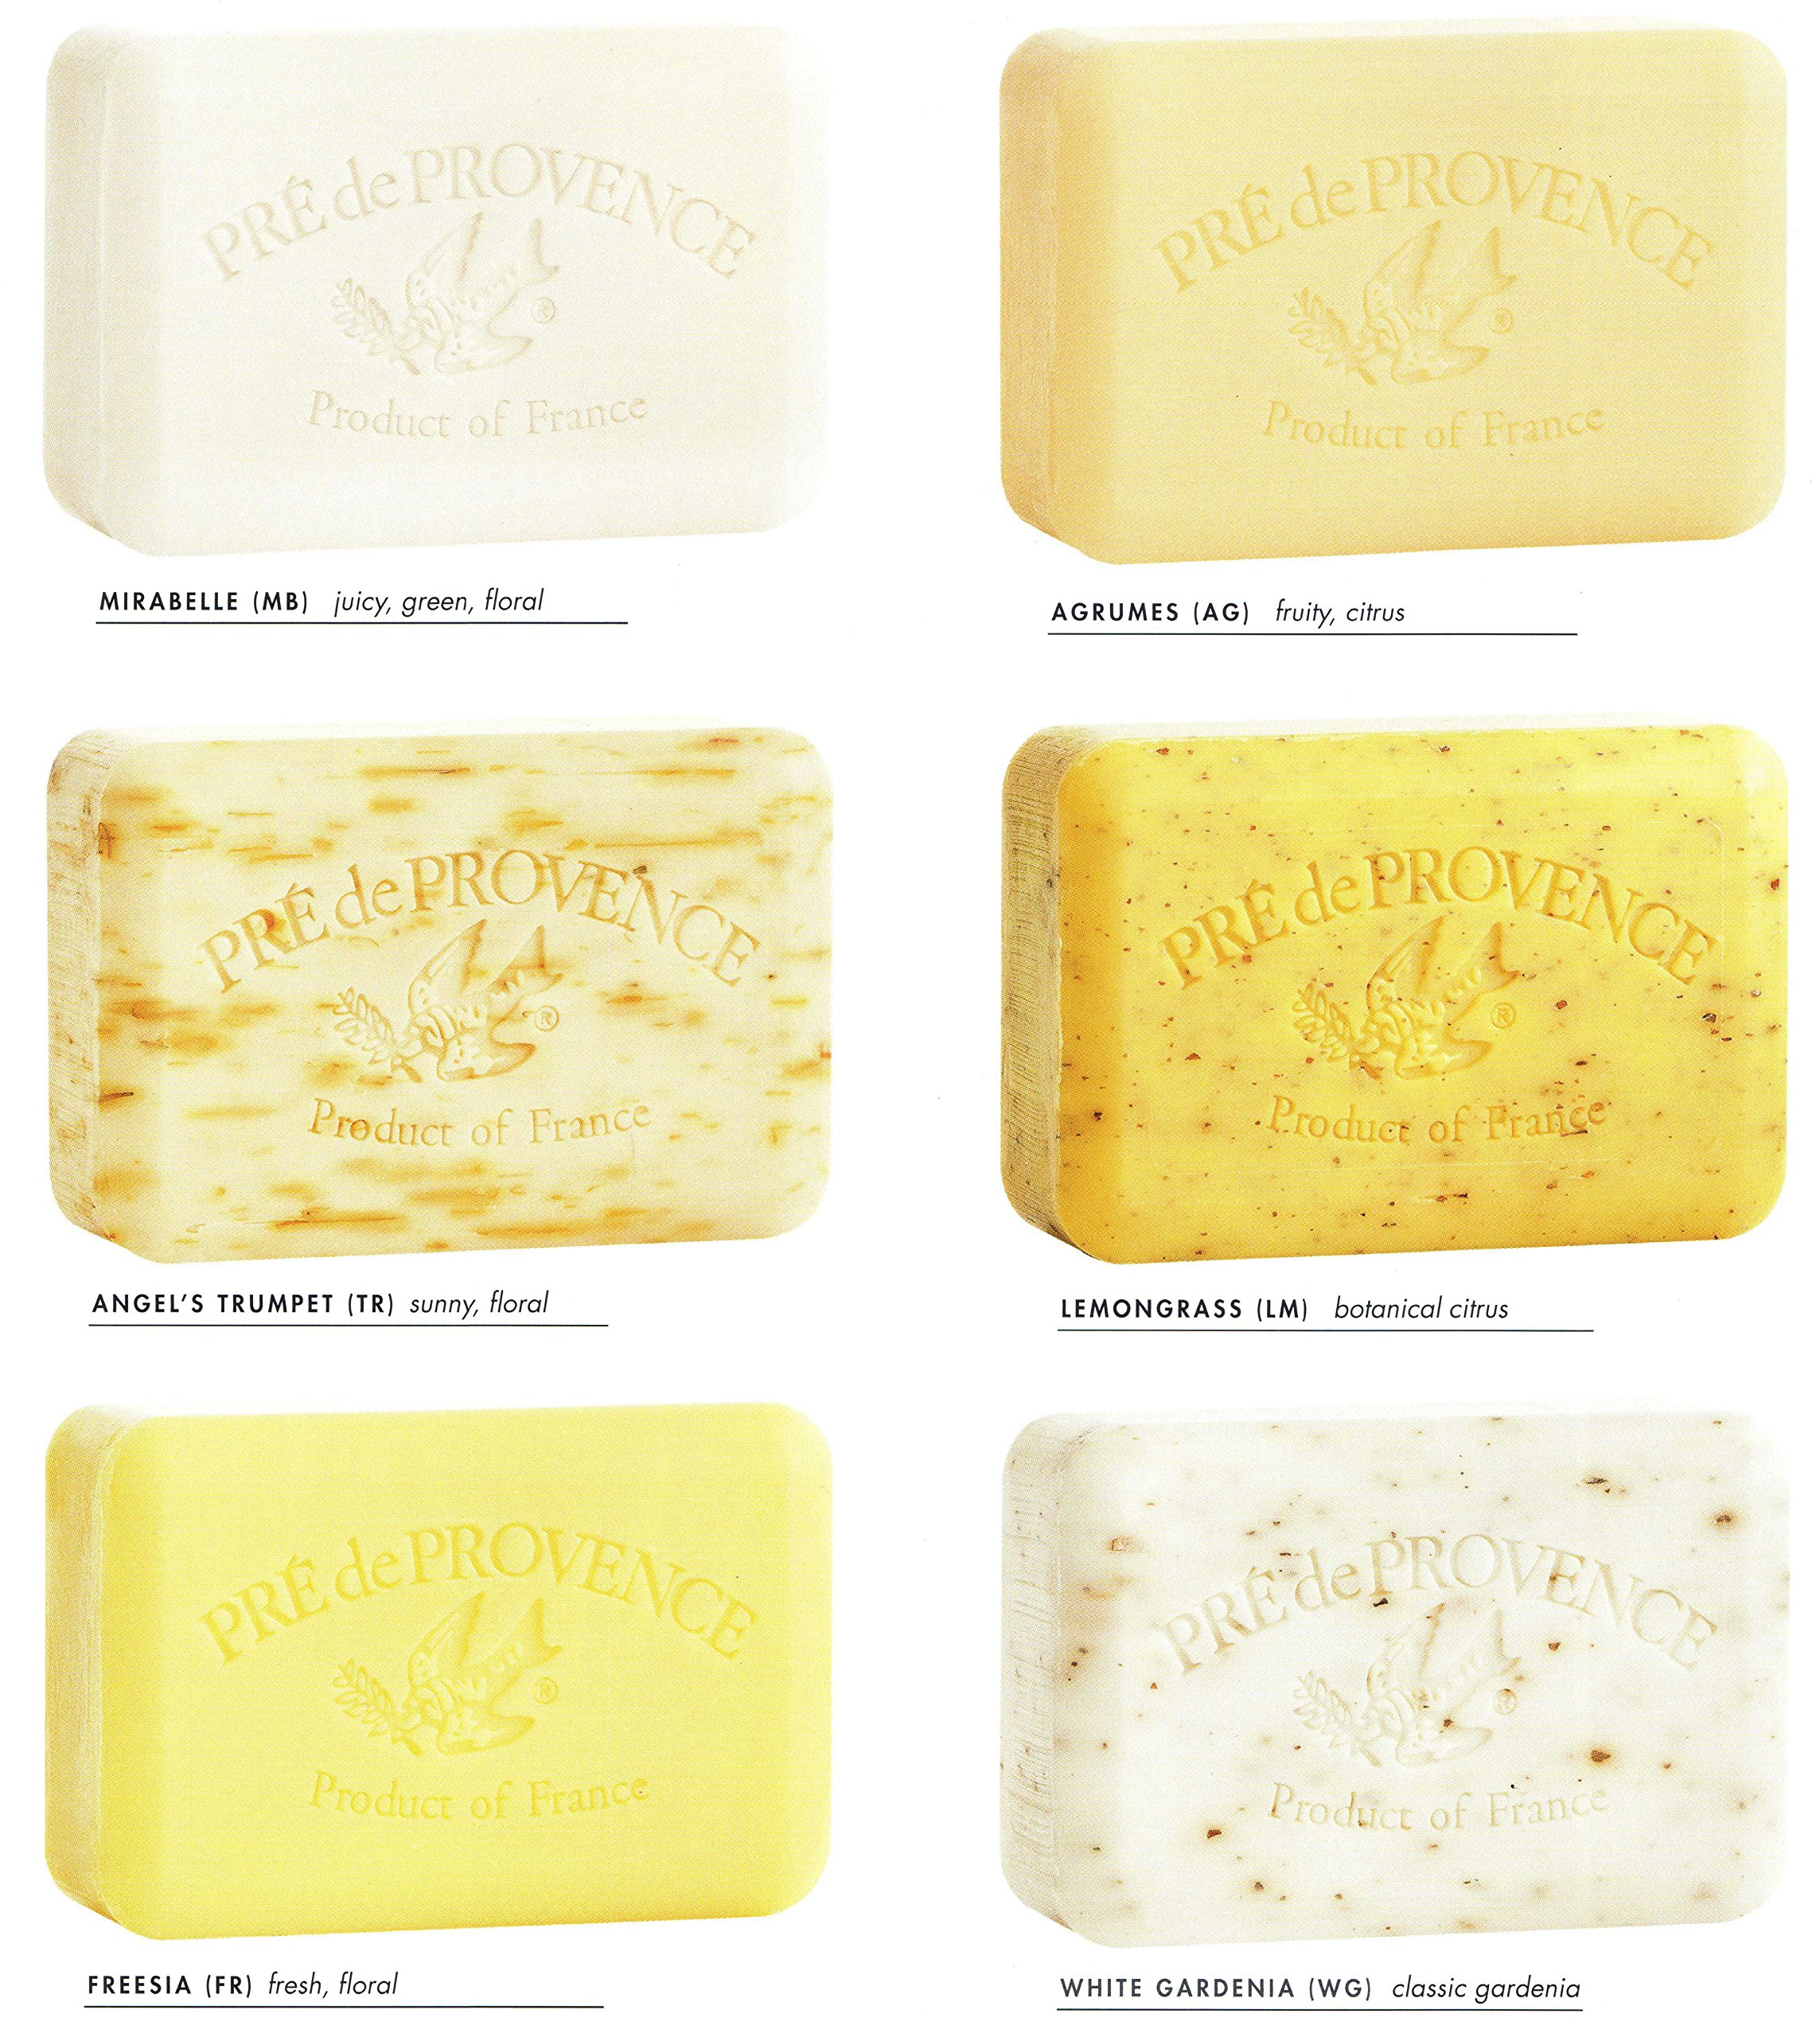 MIXED SCENTS: Case of 12 bars Pre de Provence 250g - Customize with your Choice of Scents by Pre de Provence (Image #1)